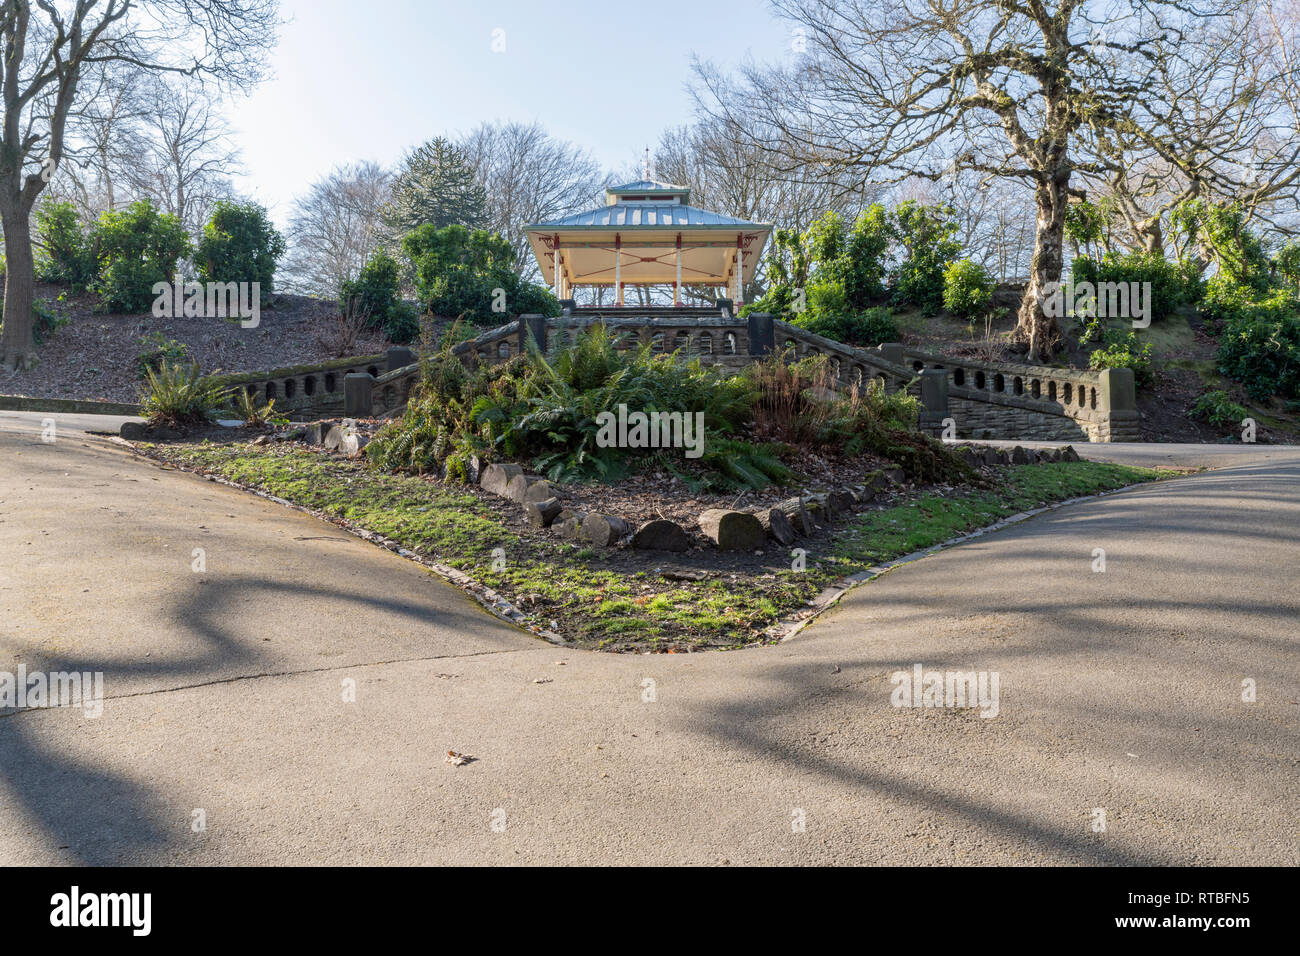 The New Bandstand in Beaumont Park, Huddersfield - Stock Image